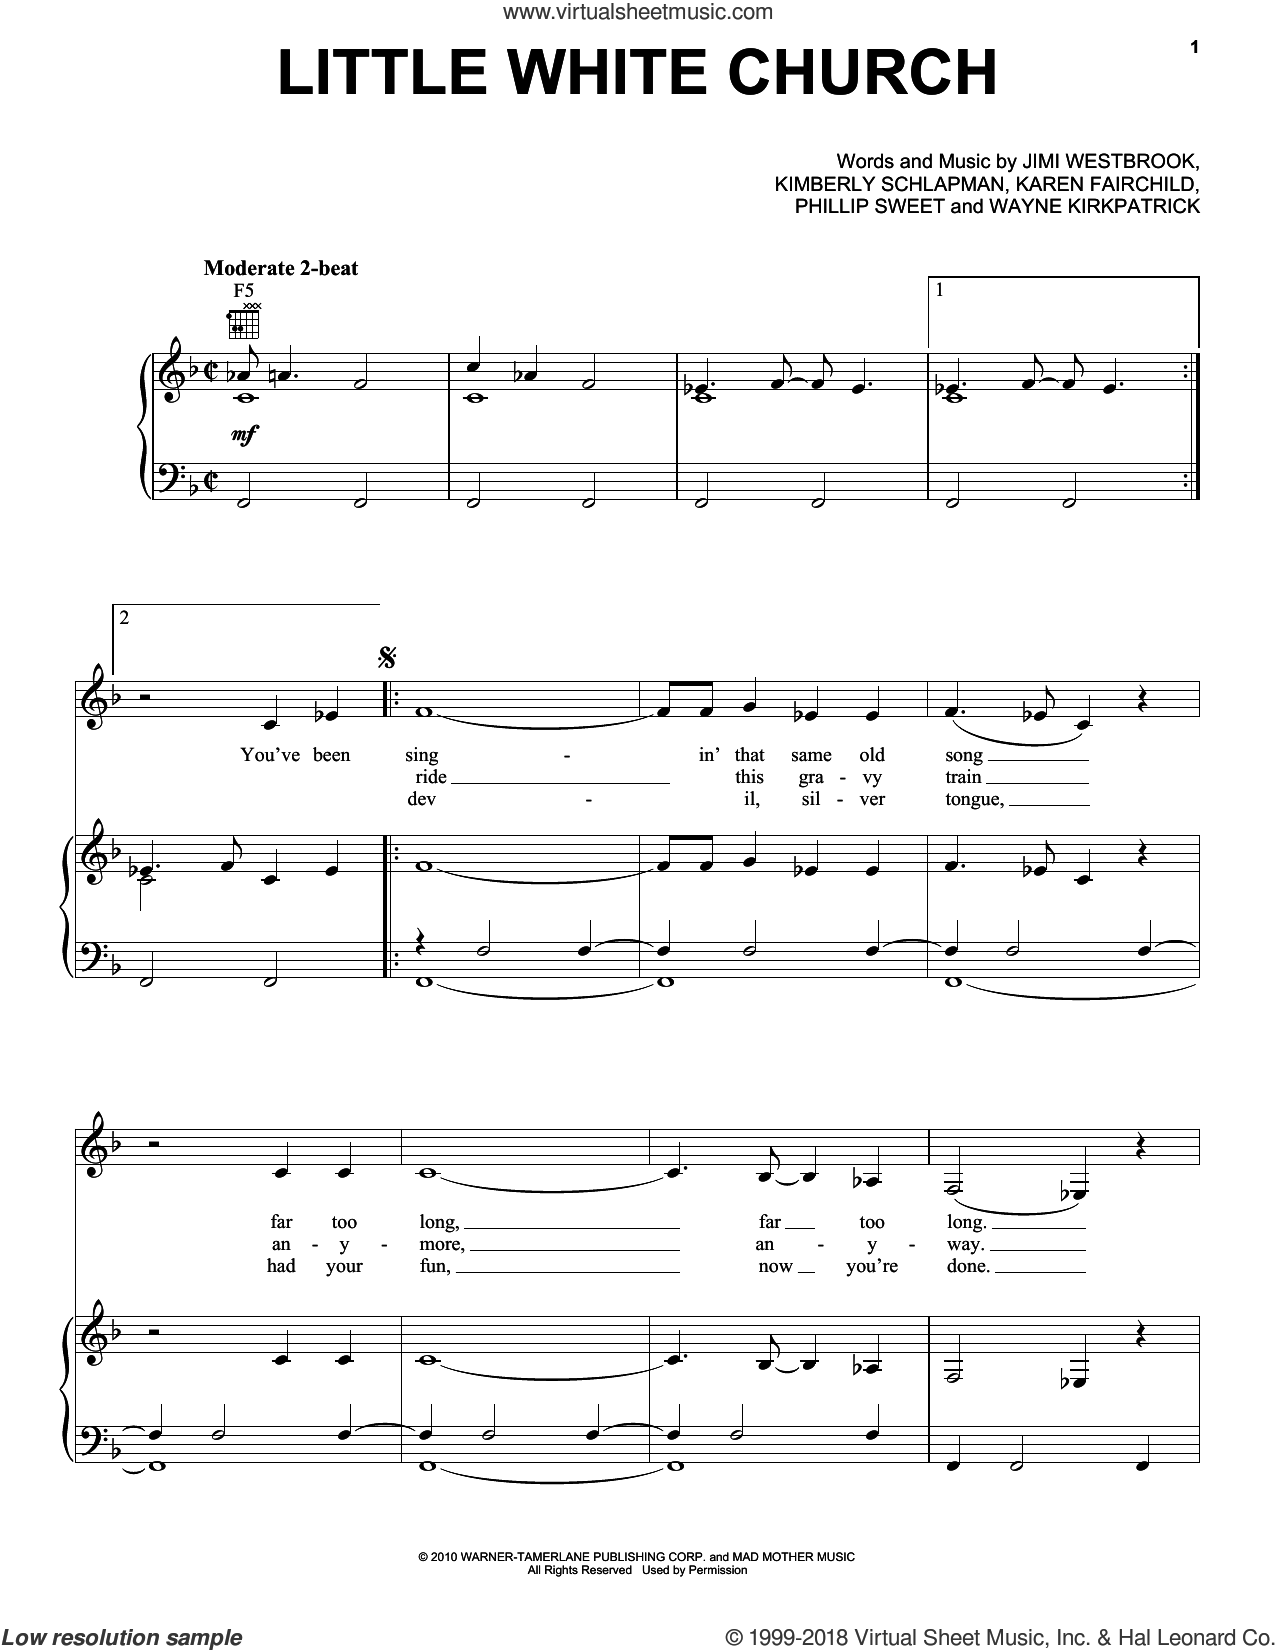 Little White Church sheet music for voice, piano or guitar by Little Big Town, Jimi Westbrook, Karen Fairchild, Kimberly Schlapman, Phillip Sweet and Wayne Kirkpatrick, intermediate skill level